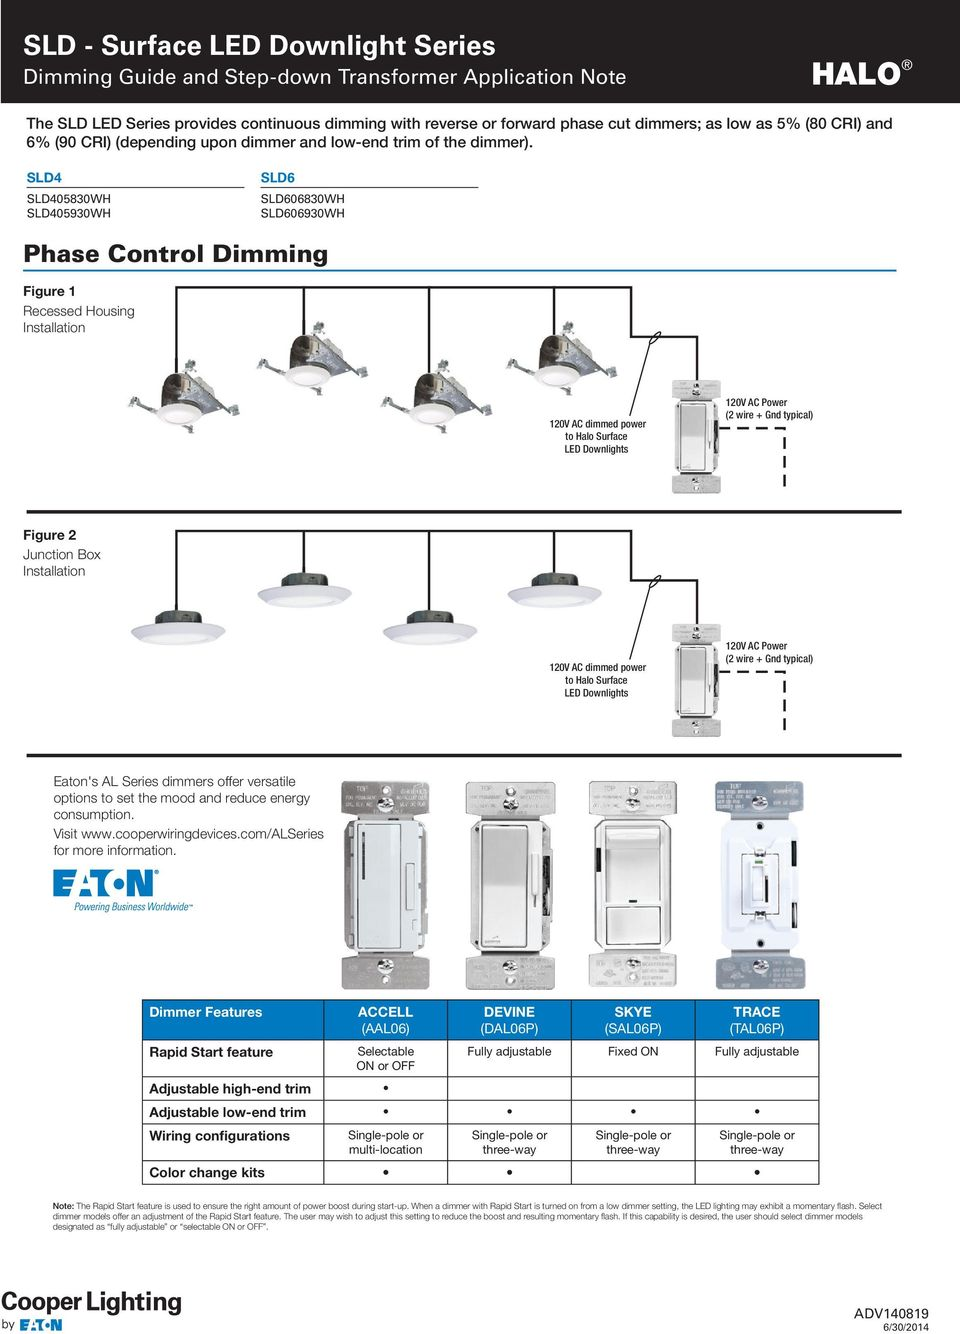 Halo Sld Surface Led Downlight Series Dimming Guide And Step Down Wiring Circuit Downlights Sld4 Sld405830wh Sld405930wh Sld6 Sld606830wh Sld606930wh Phase Control Figure 1 Recessed Housing Installation 120v Ac